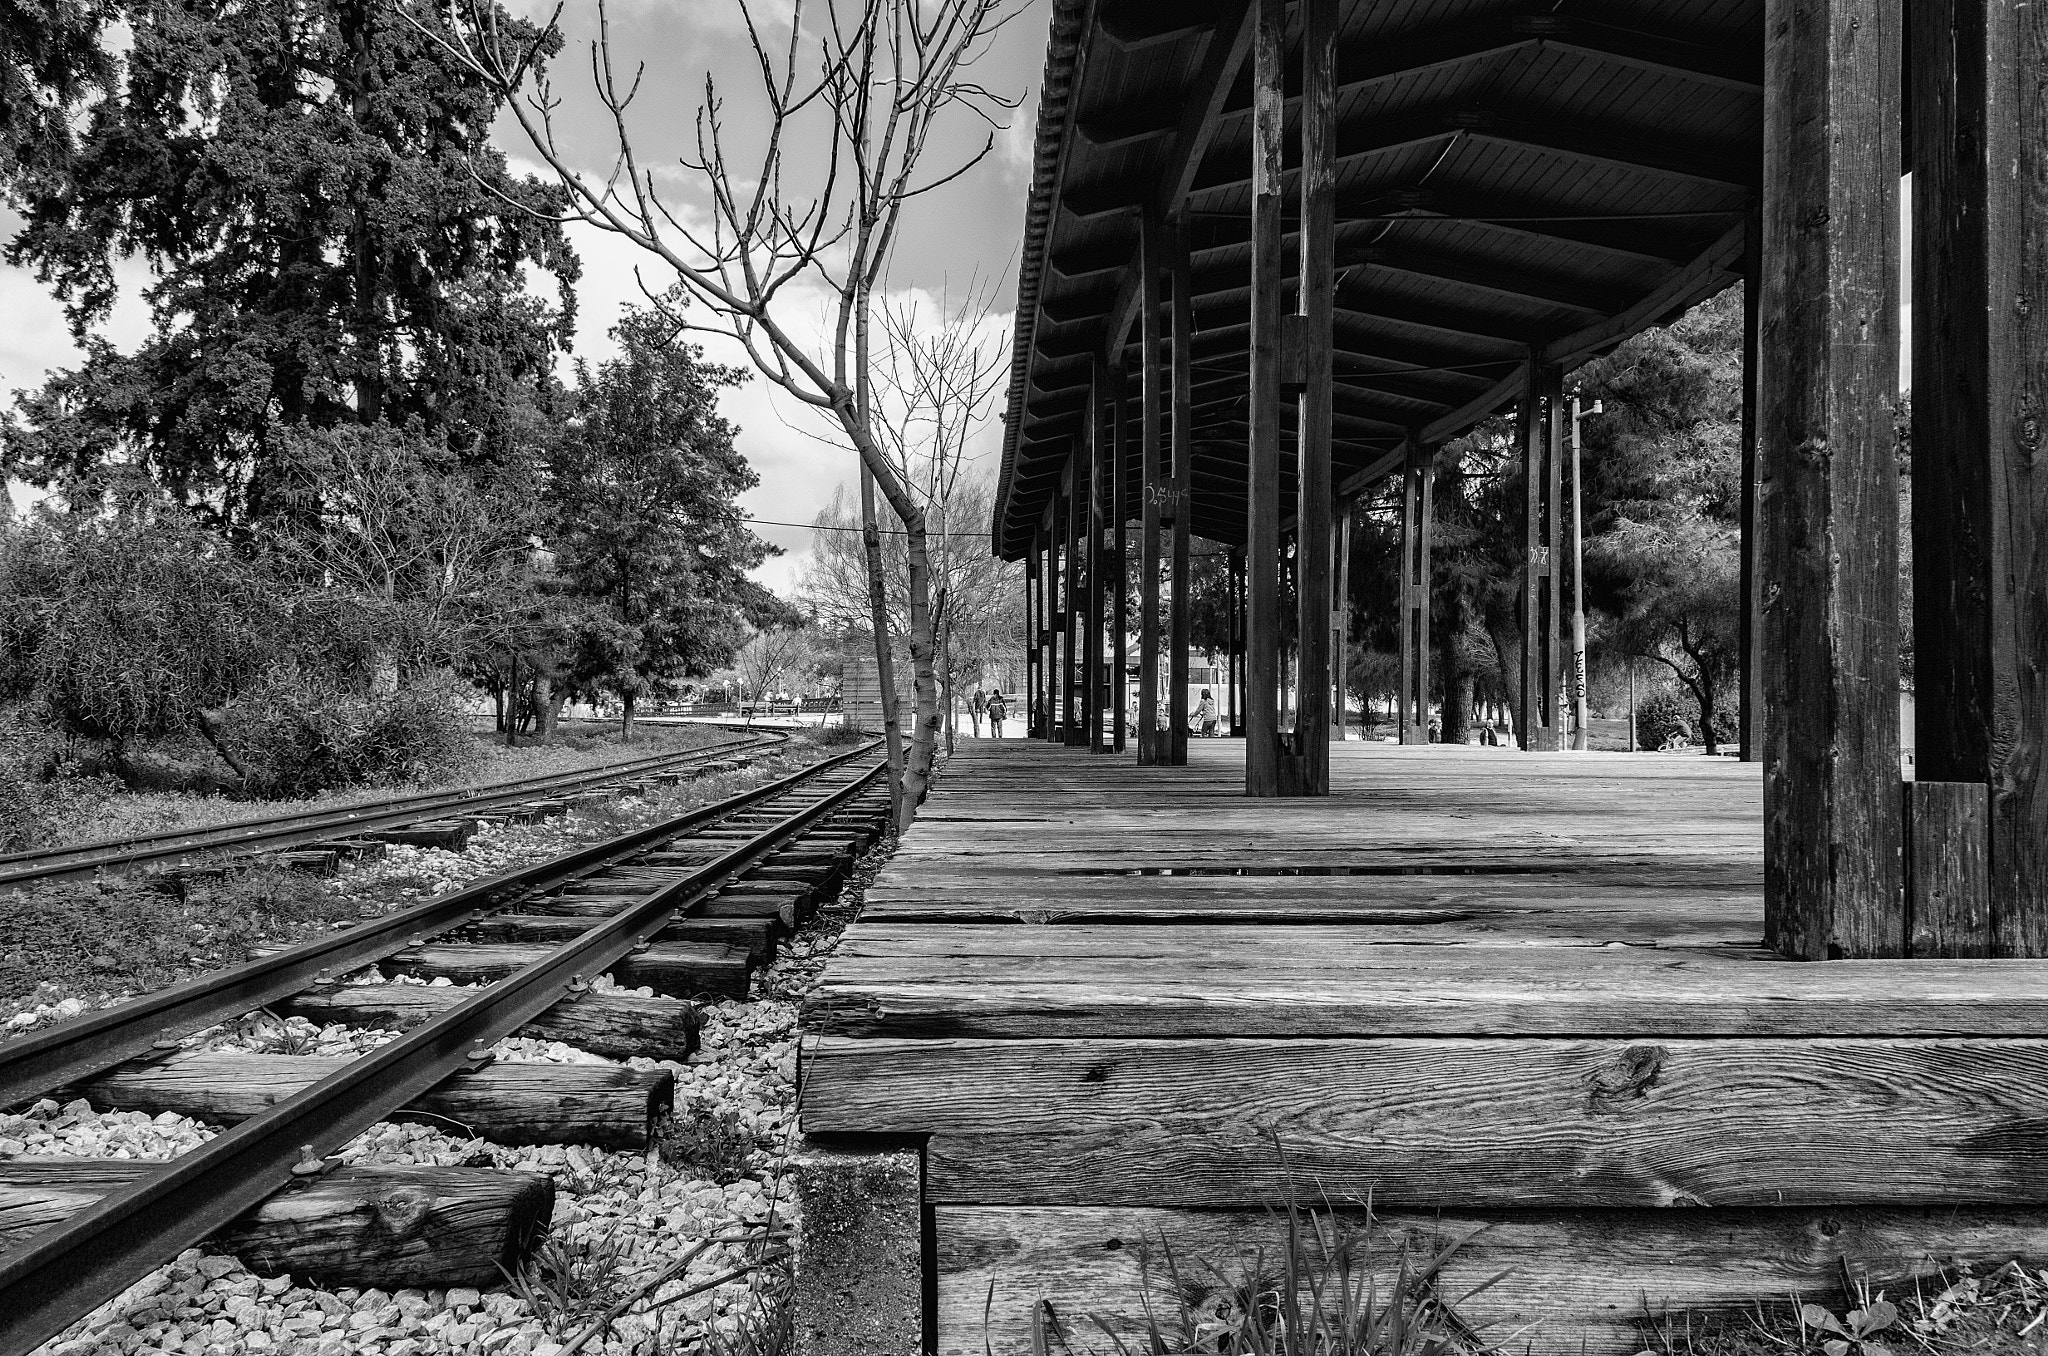 Photograph Long Wait for A Train Don't Come by Manos Pergioudakis on 500px